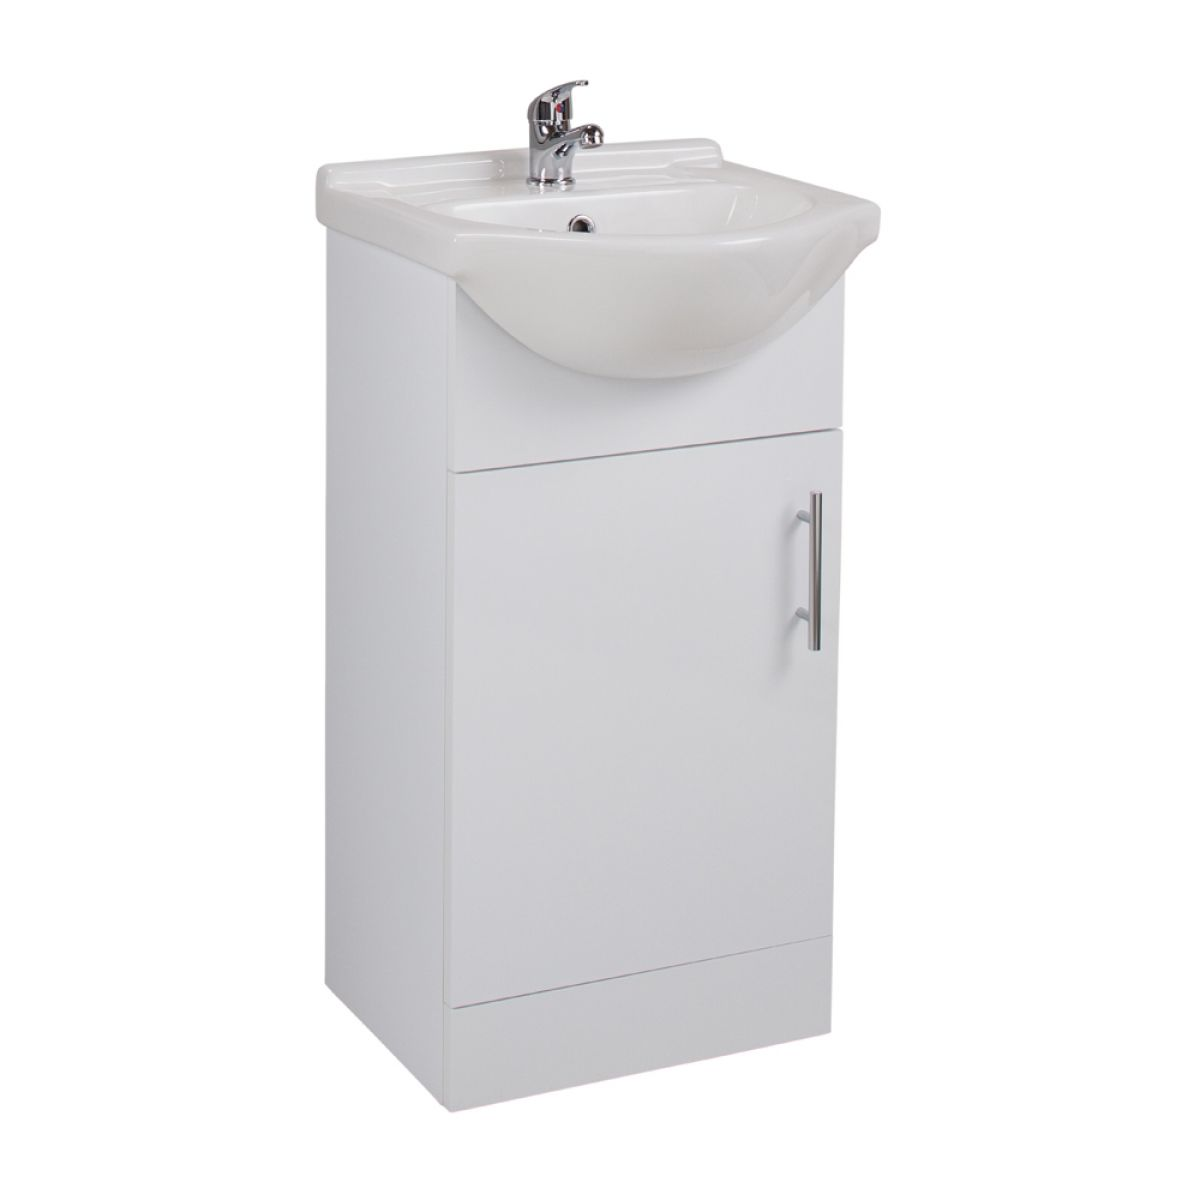 Cassellie Kass White Single Door Basin Unit with Basin 450mm